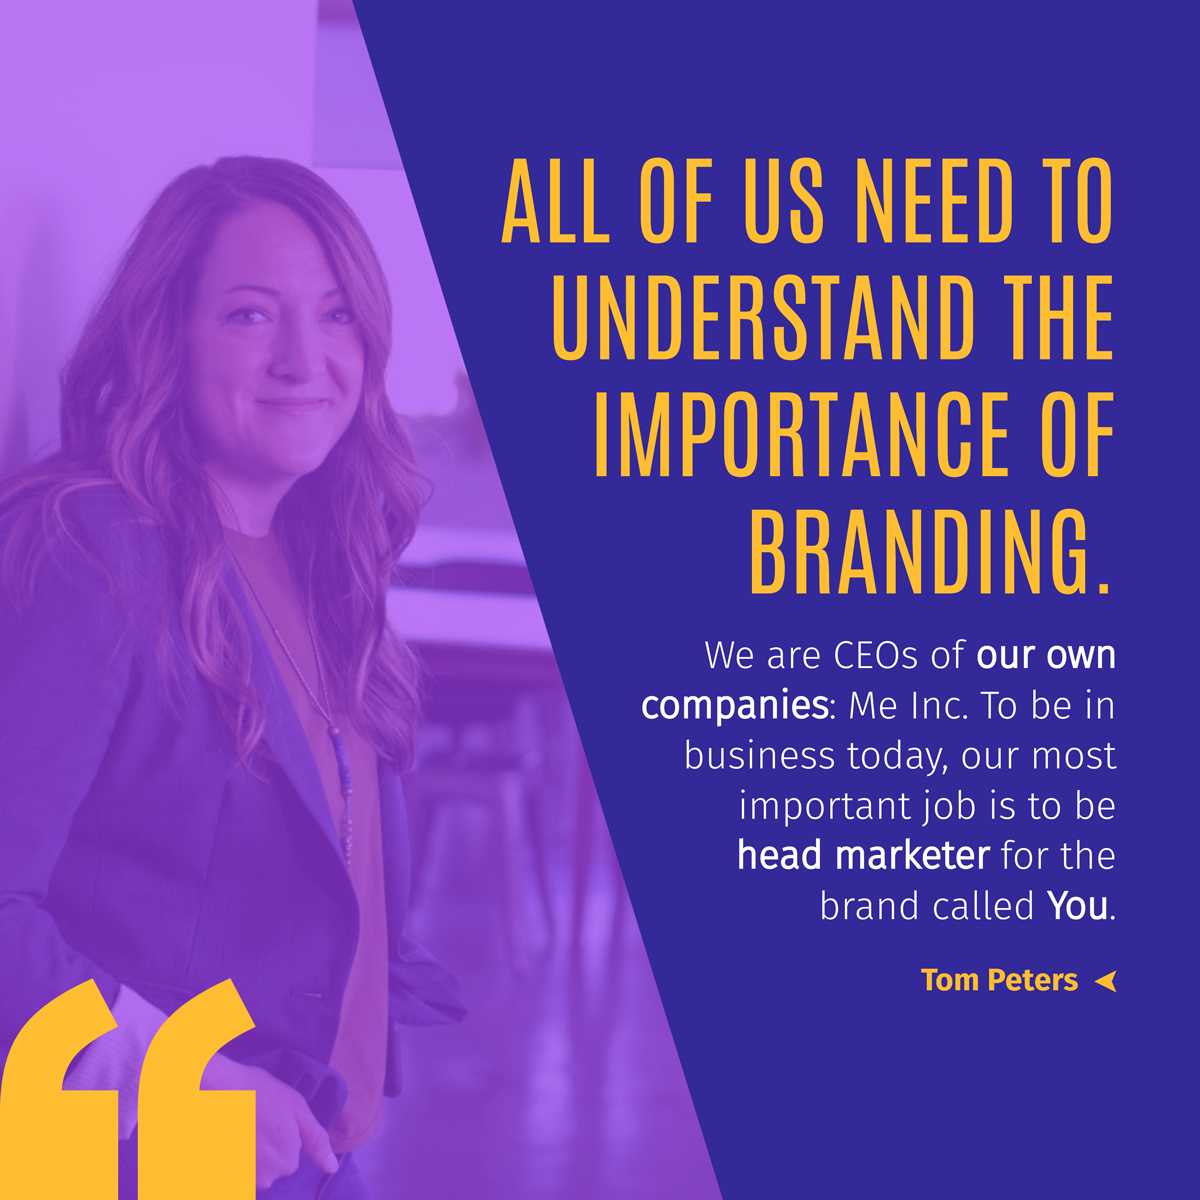 A quote about branding by Tom Peters.